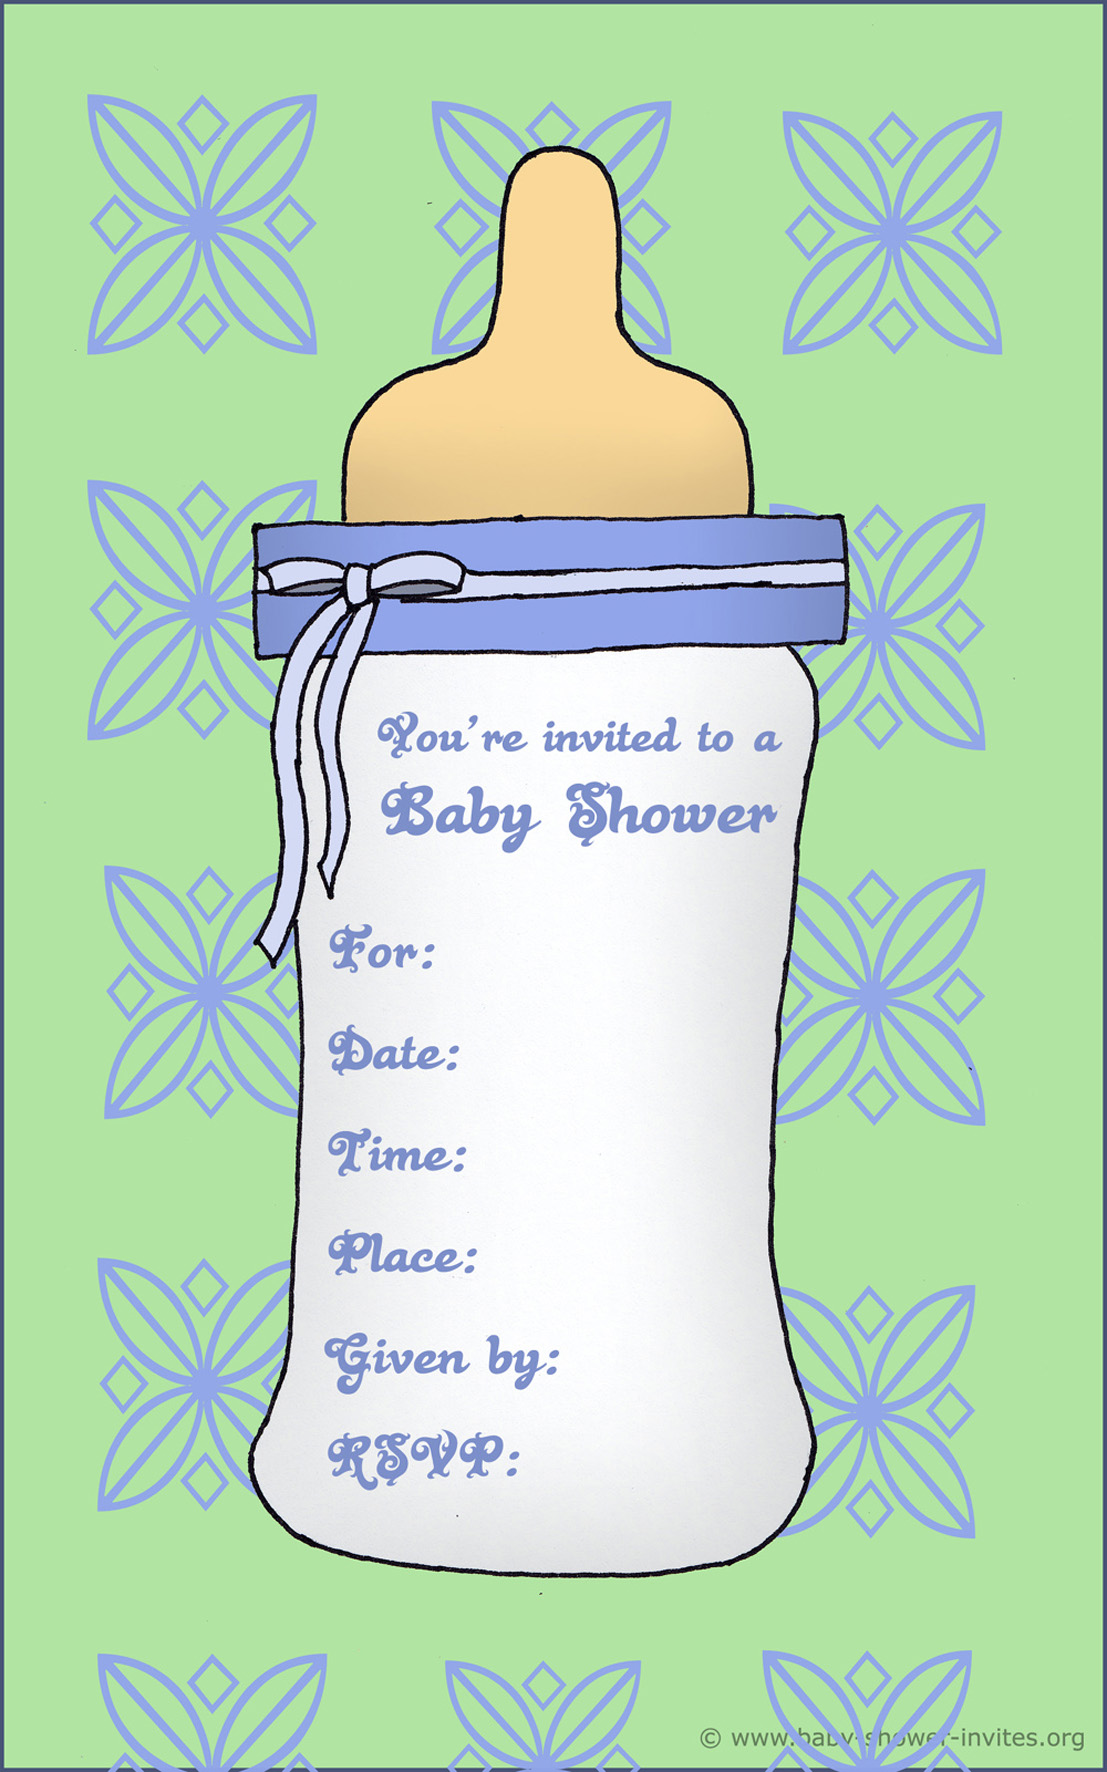 Free baby shower invitation templates dolanpedia invitations template free baby shower invitation templates bottle filmwisefo